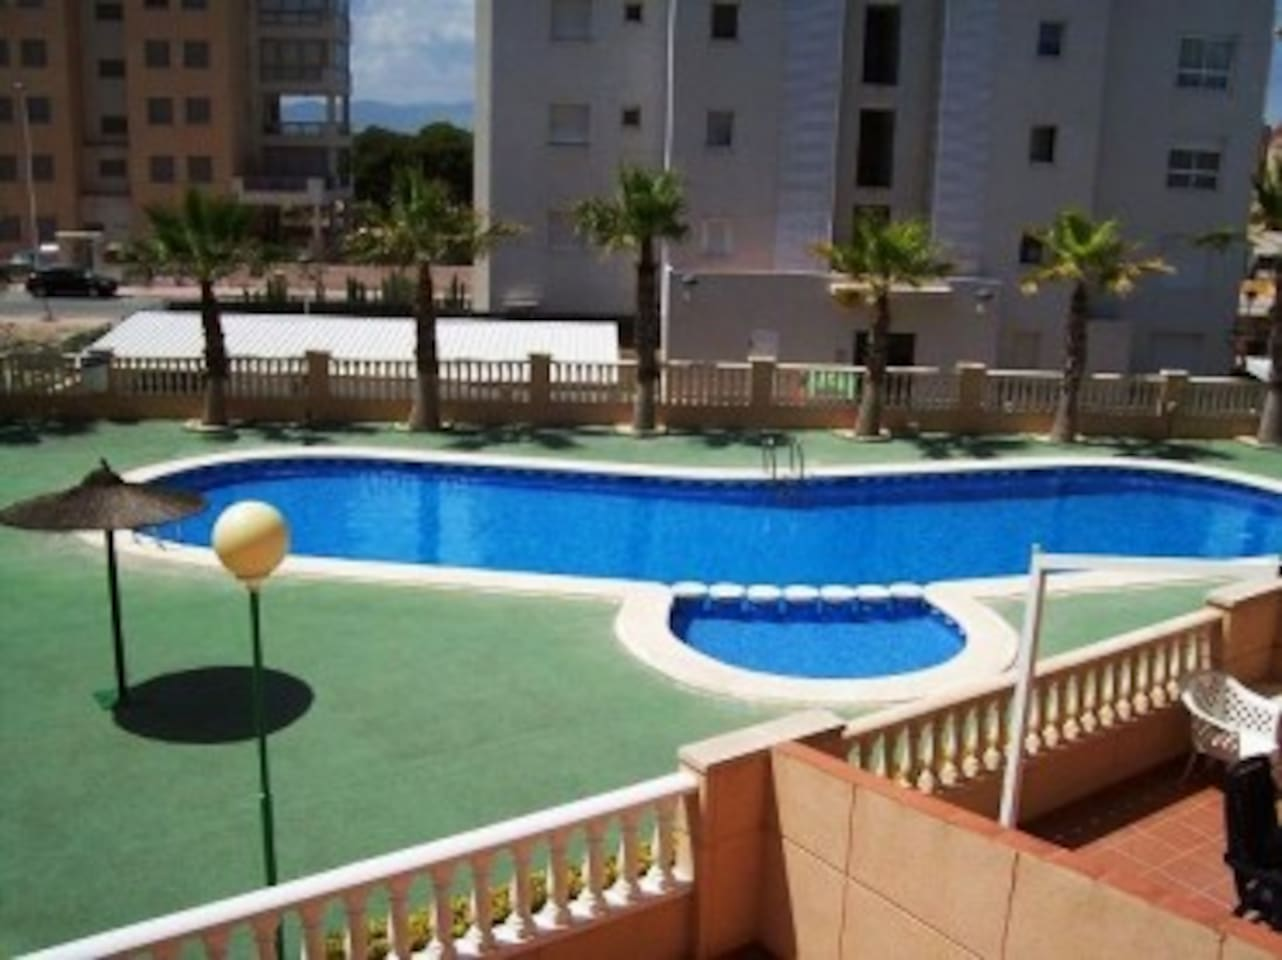 If you choose to book your holiday in this apartment, I can assure you that you won't be disappointed.   The apartment is tastefully furnished and fully equipped to ensure you have the best holiday experience possible!